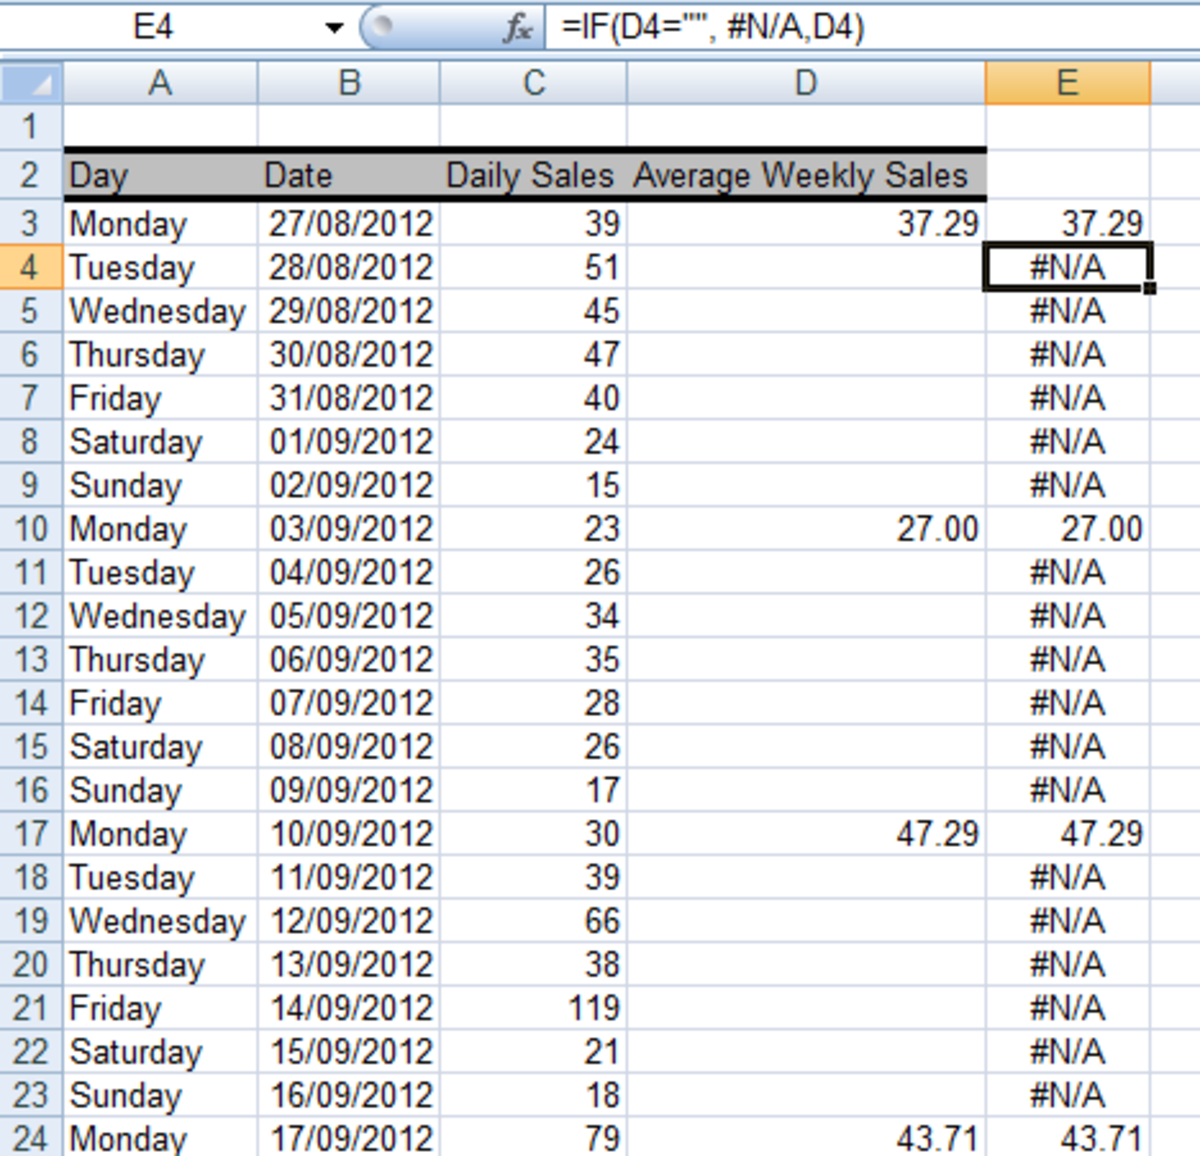 Ediblewildsus  Winsome How To Get Excel  And  To Ignore Empty Cells In A Chart Or  With Gorgeous Using The If Function In A Formula To Convert Empty Cells To Na With Delightful Excel Truncate Function Also How To Convert Dates In Excel In Addition Coefficient Of Correlation In Excel And Percentage Excel Formula As Well As Excel Function For Division Additionally Excel Day Of Month From Turbofuturecom With Ediblewildsus  Gorgeous How To Get Excel  And  To Ignore Empty Cells In A Chart Or  With Delightful Using The If Function In A Formula To Convert Empty Cells To Na And Winsome Excel Truncate Function Also How To Convert Dates In Excel In Addition Coefficient Of Correlation In Excel From Turbofuturecom